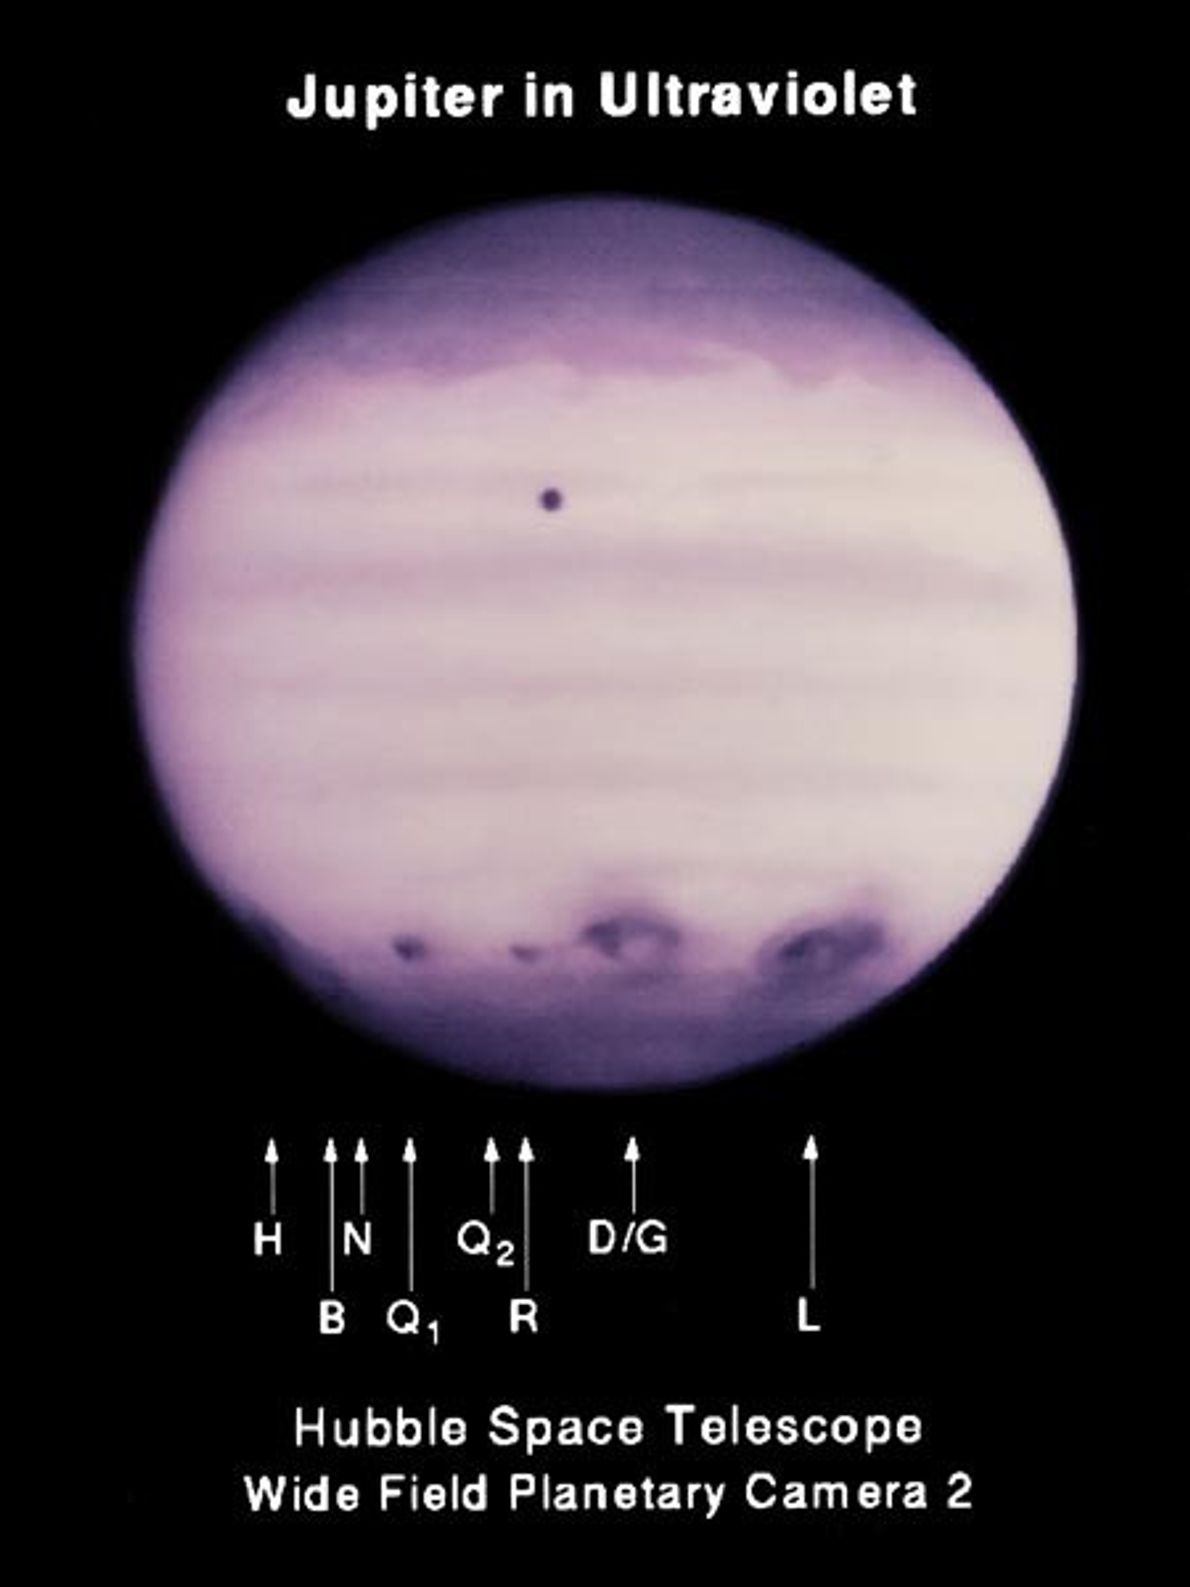 Fragments of comet P/Shoemaker-Levy 9 struck Jupiter in July 1994, leaving the impacts visible in this ...